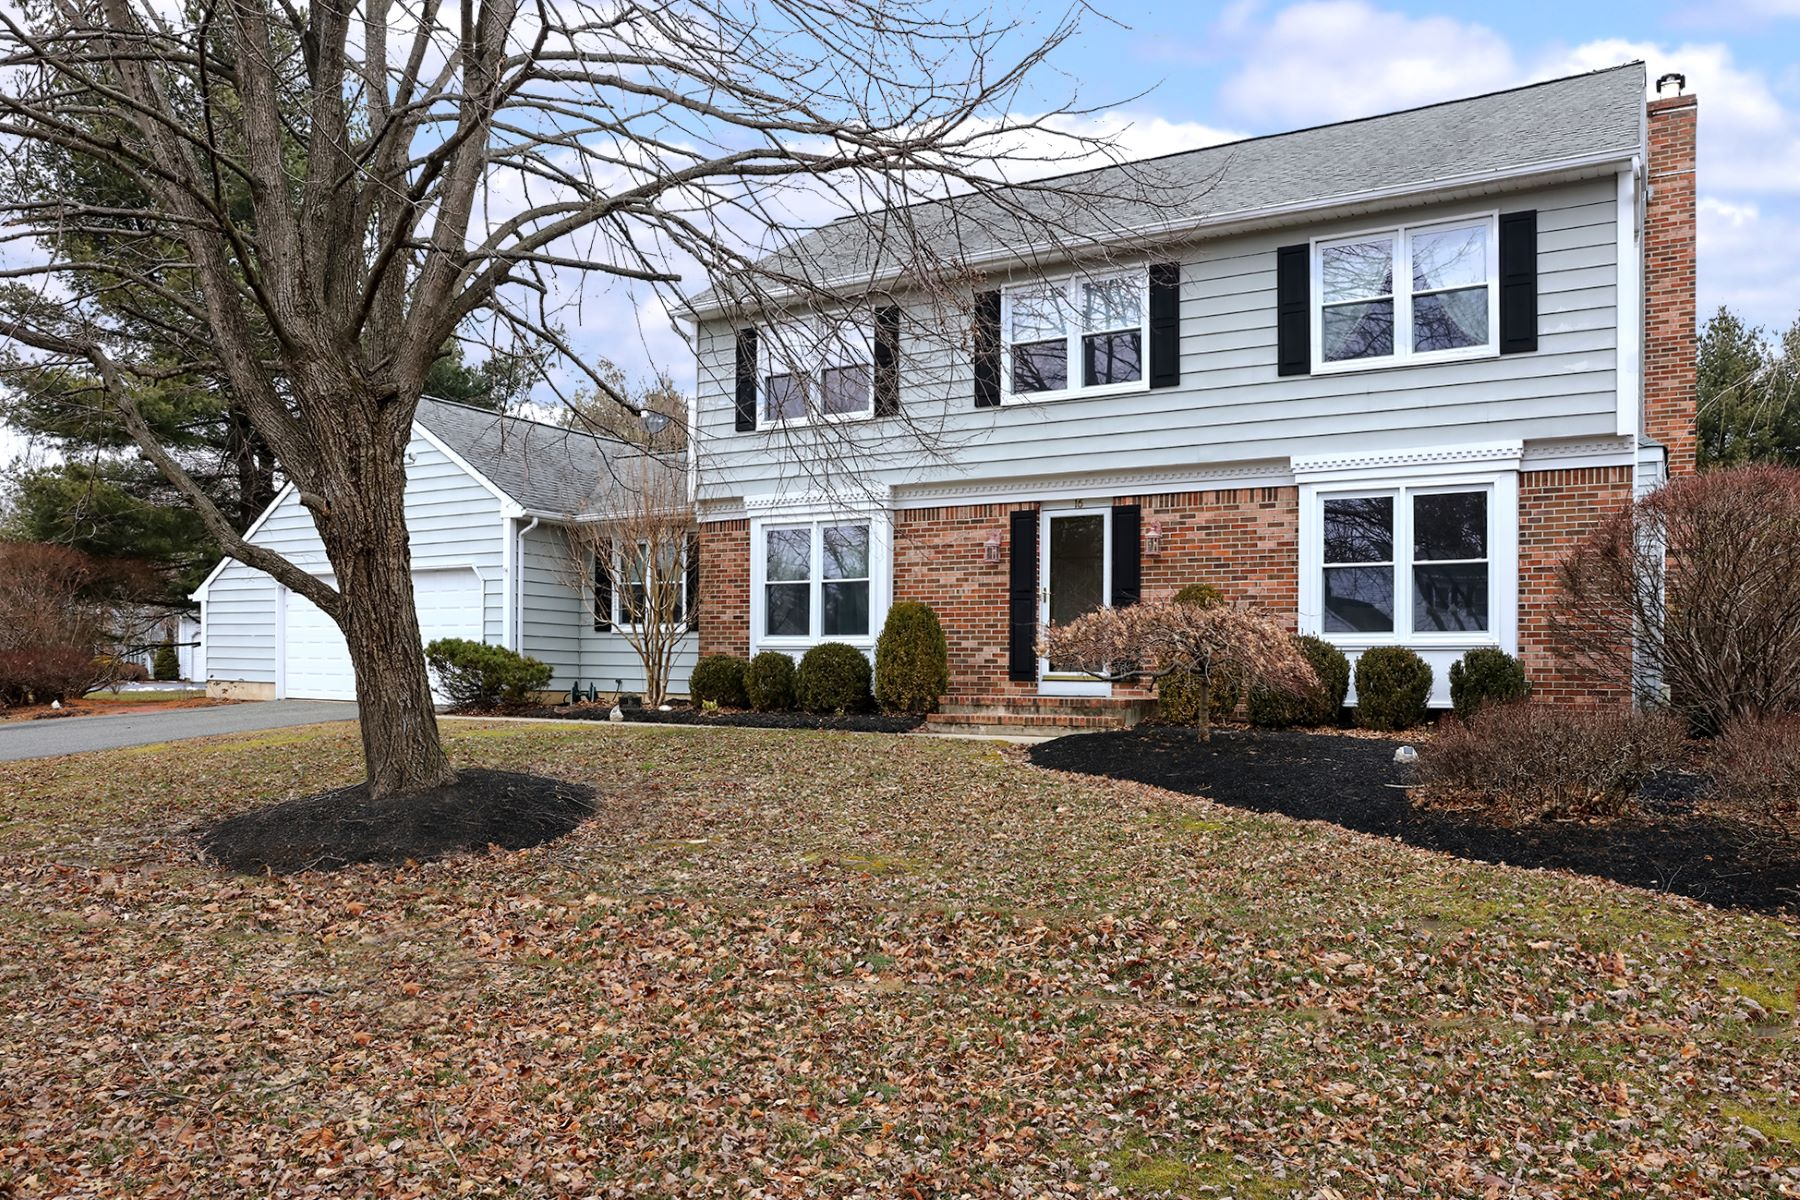 Single Family Homes for Sale at Dutch Neck Colonial Is the Definition of Home 16 Greenfield Drive South, Princeton Junction, New Jersey 08550 United States